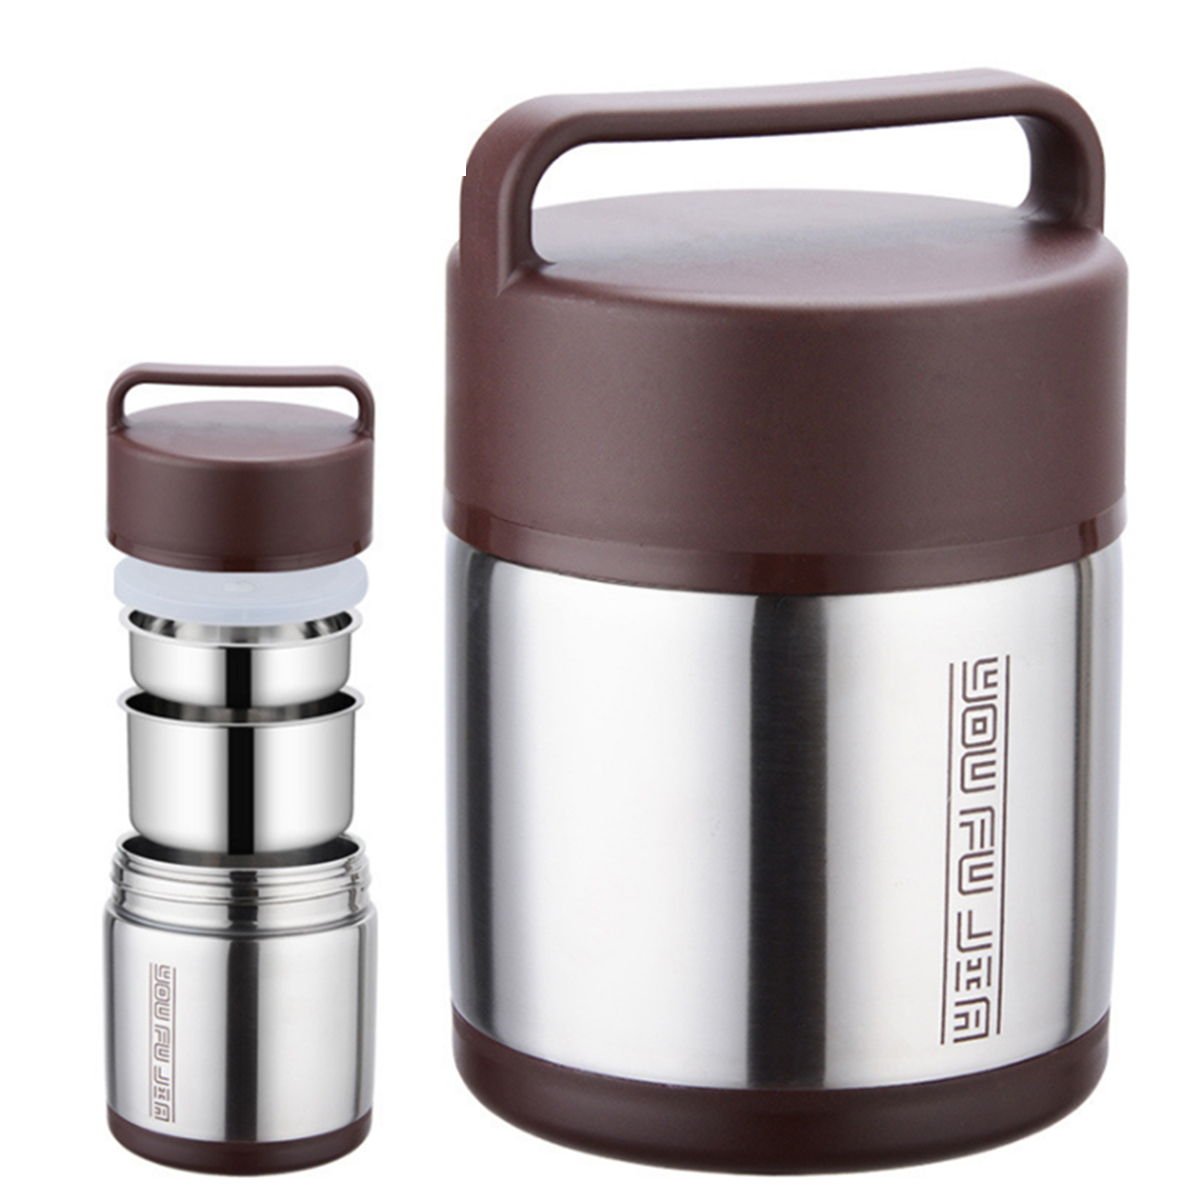 Stainless Steel 3 Tier Vacuum Insulated Lunch Box Jar Hot Thermos Food Container